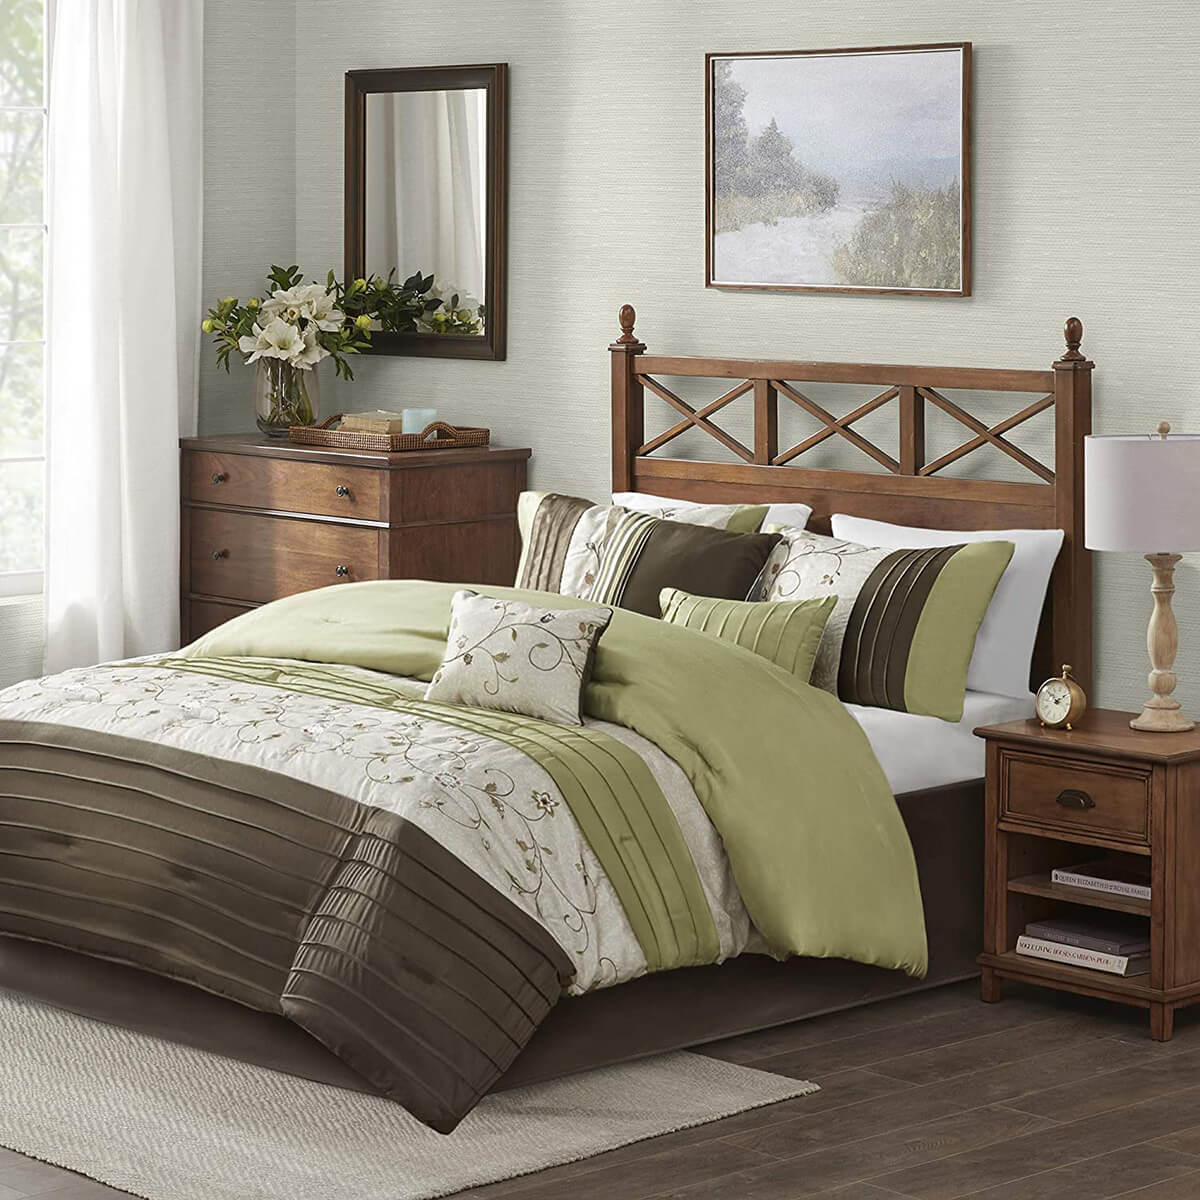 Brown and Green Fresh Air Bedroom Decor